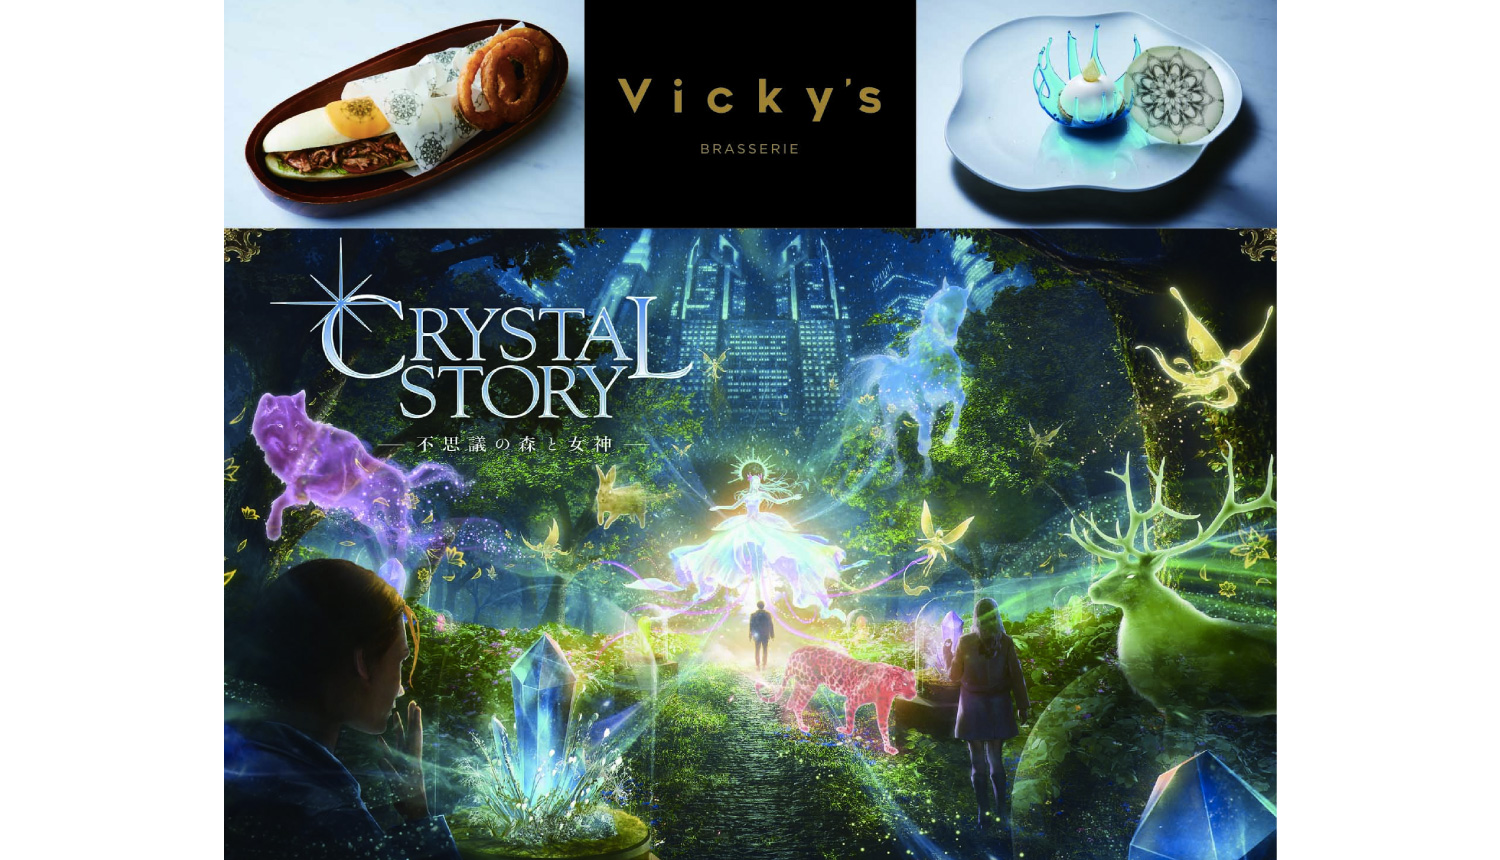 CRYSTAL-SNOW-Vicky's-Collaboration-menu-CRYSTAL-STORY–不思議の森と女神-コラボメニュー-CRYSTAL-SNOW-餐飲-_